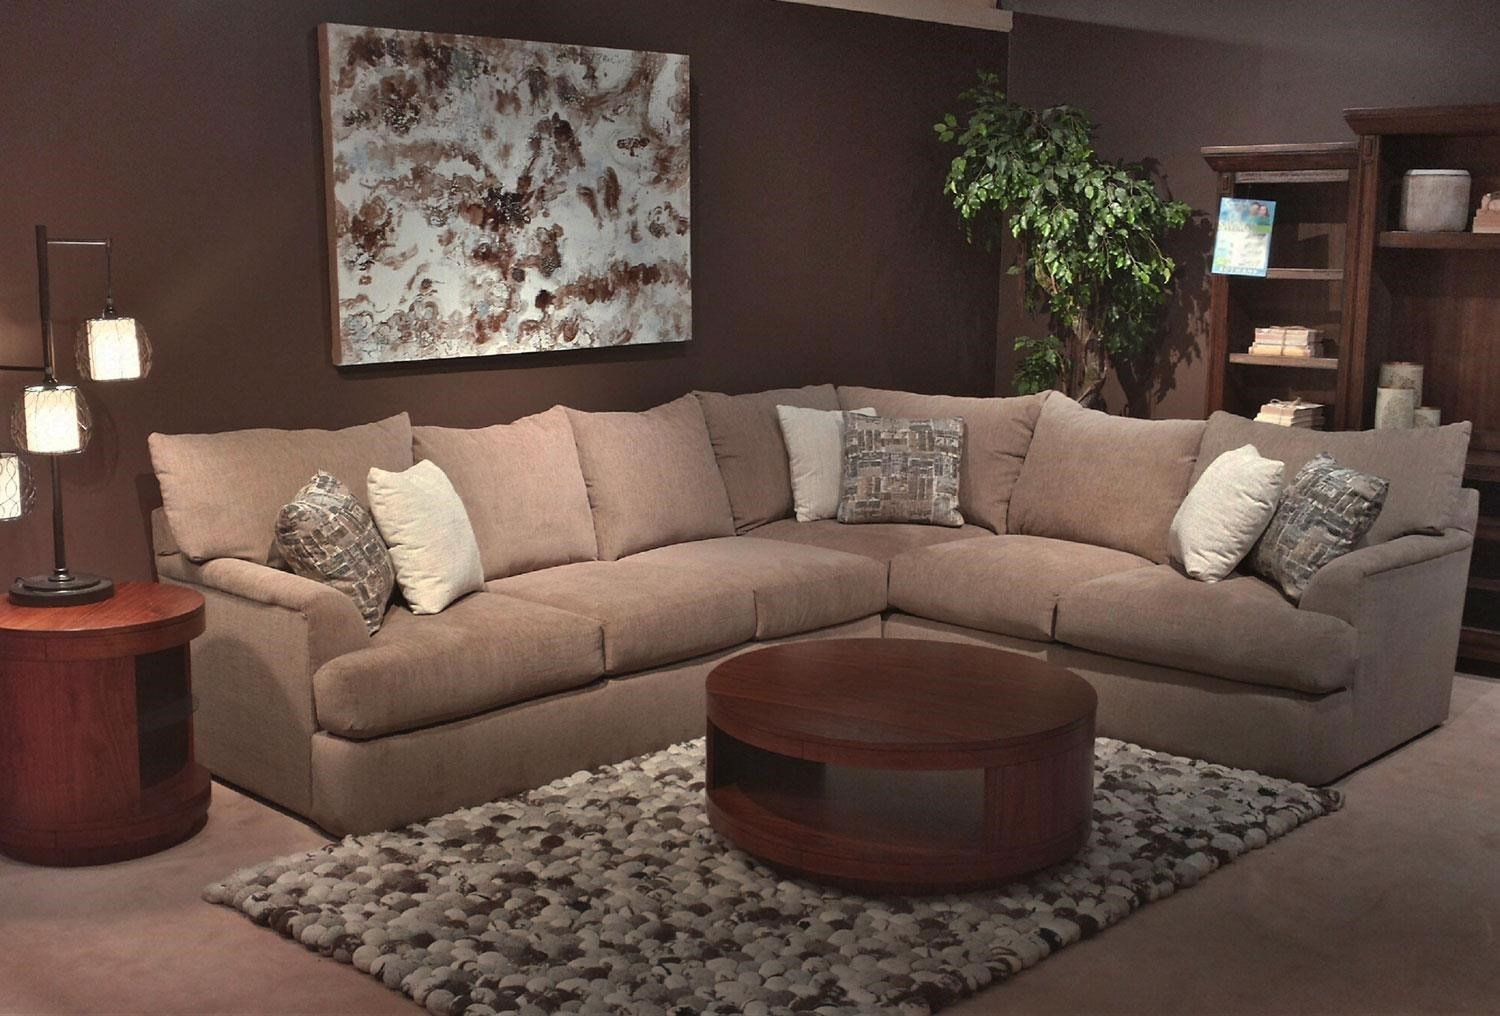 Sofa L Images Shambala Contemporary L Shaped Sectional Sofa By Simple Elegance At Rotmans